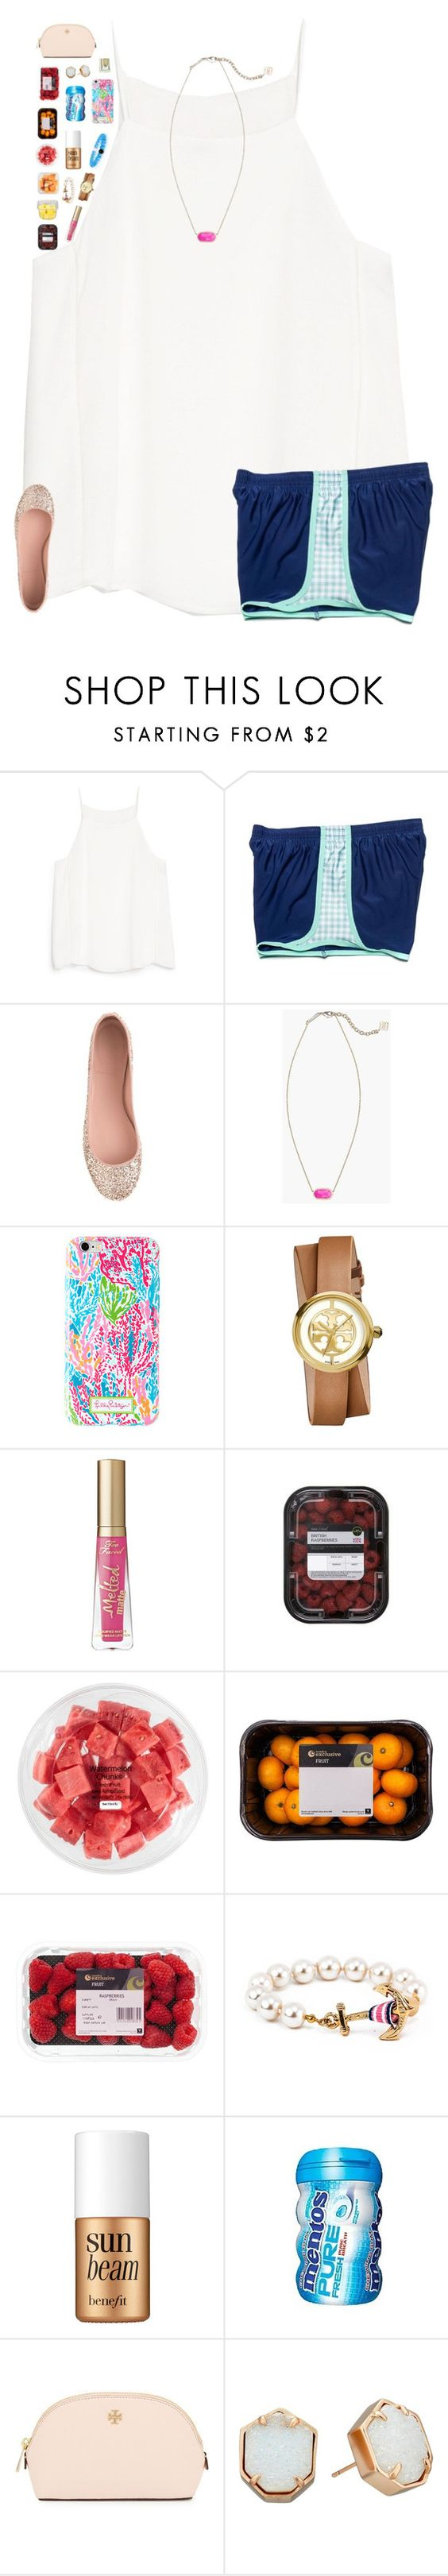 """""""I like fruit 🍉 🍉"""" by breezerw ❤ liked on Polyvore featuring MANGO, J.Crew, Kendra Scott, Tory Burch, Too Faced Cosmetics, FRUIT and Benefit"""